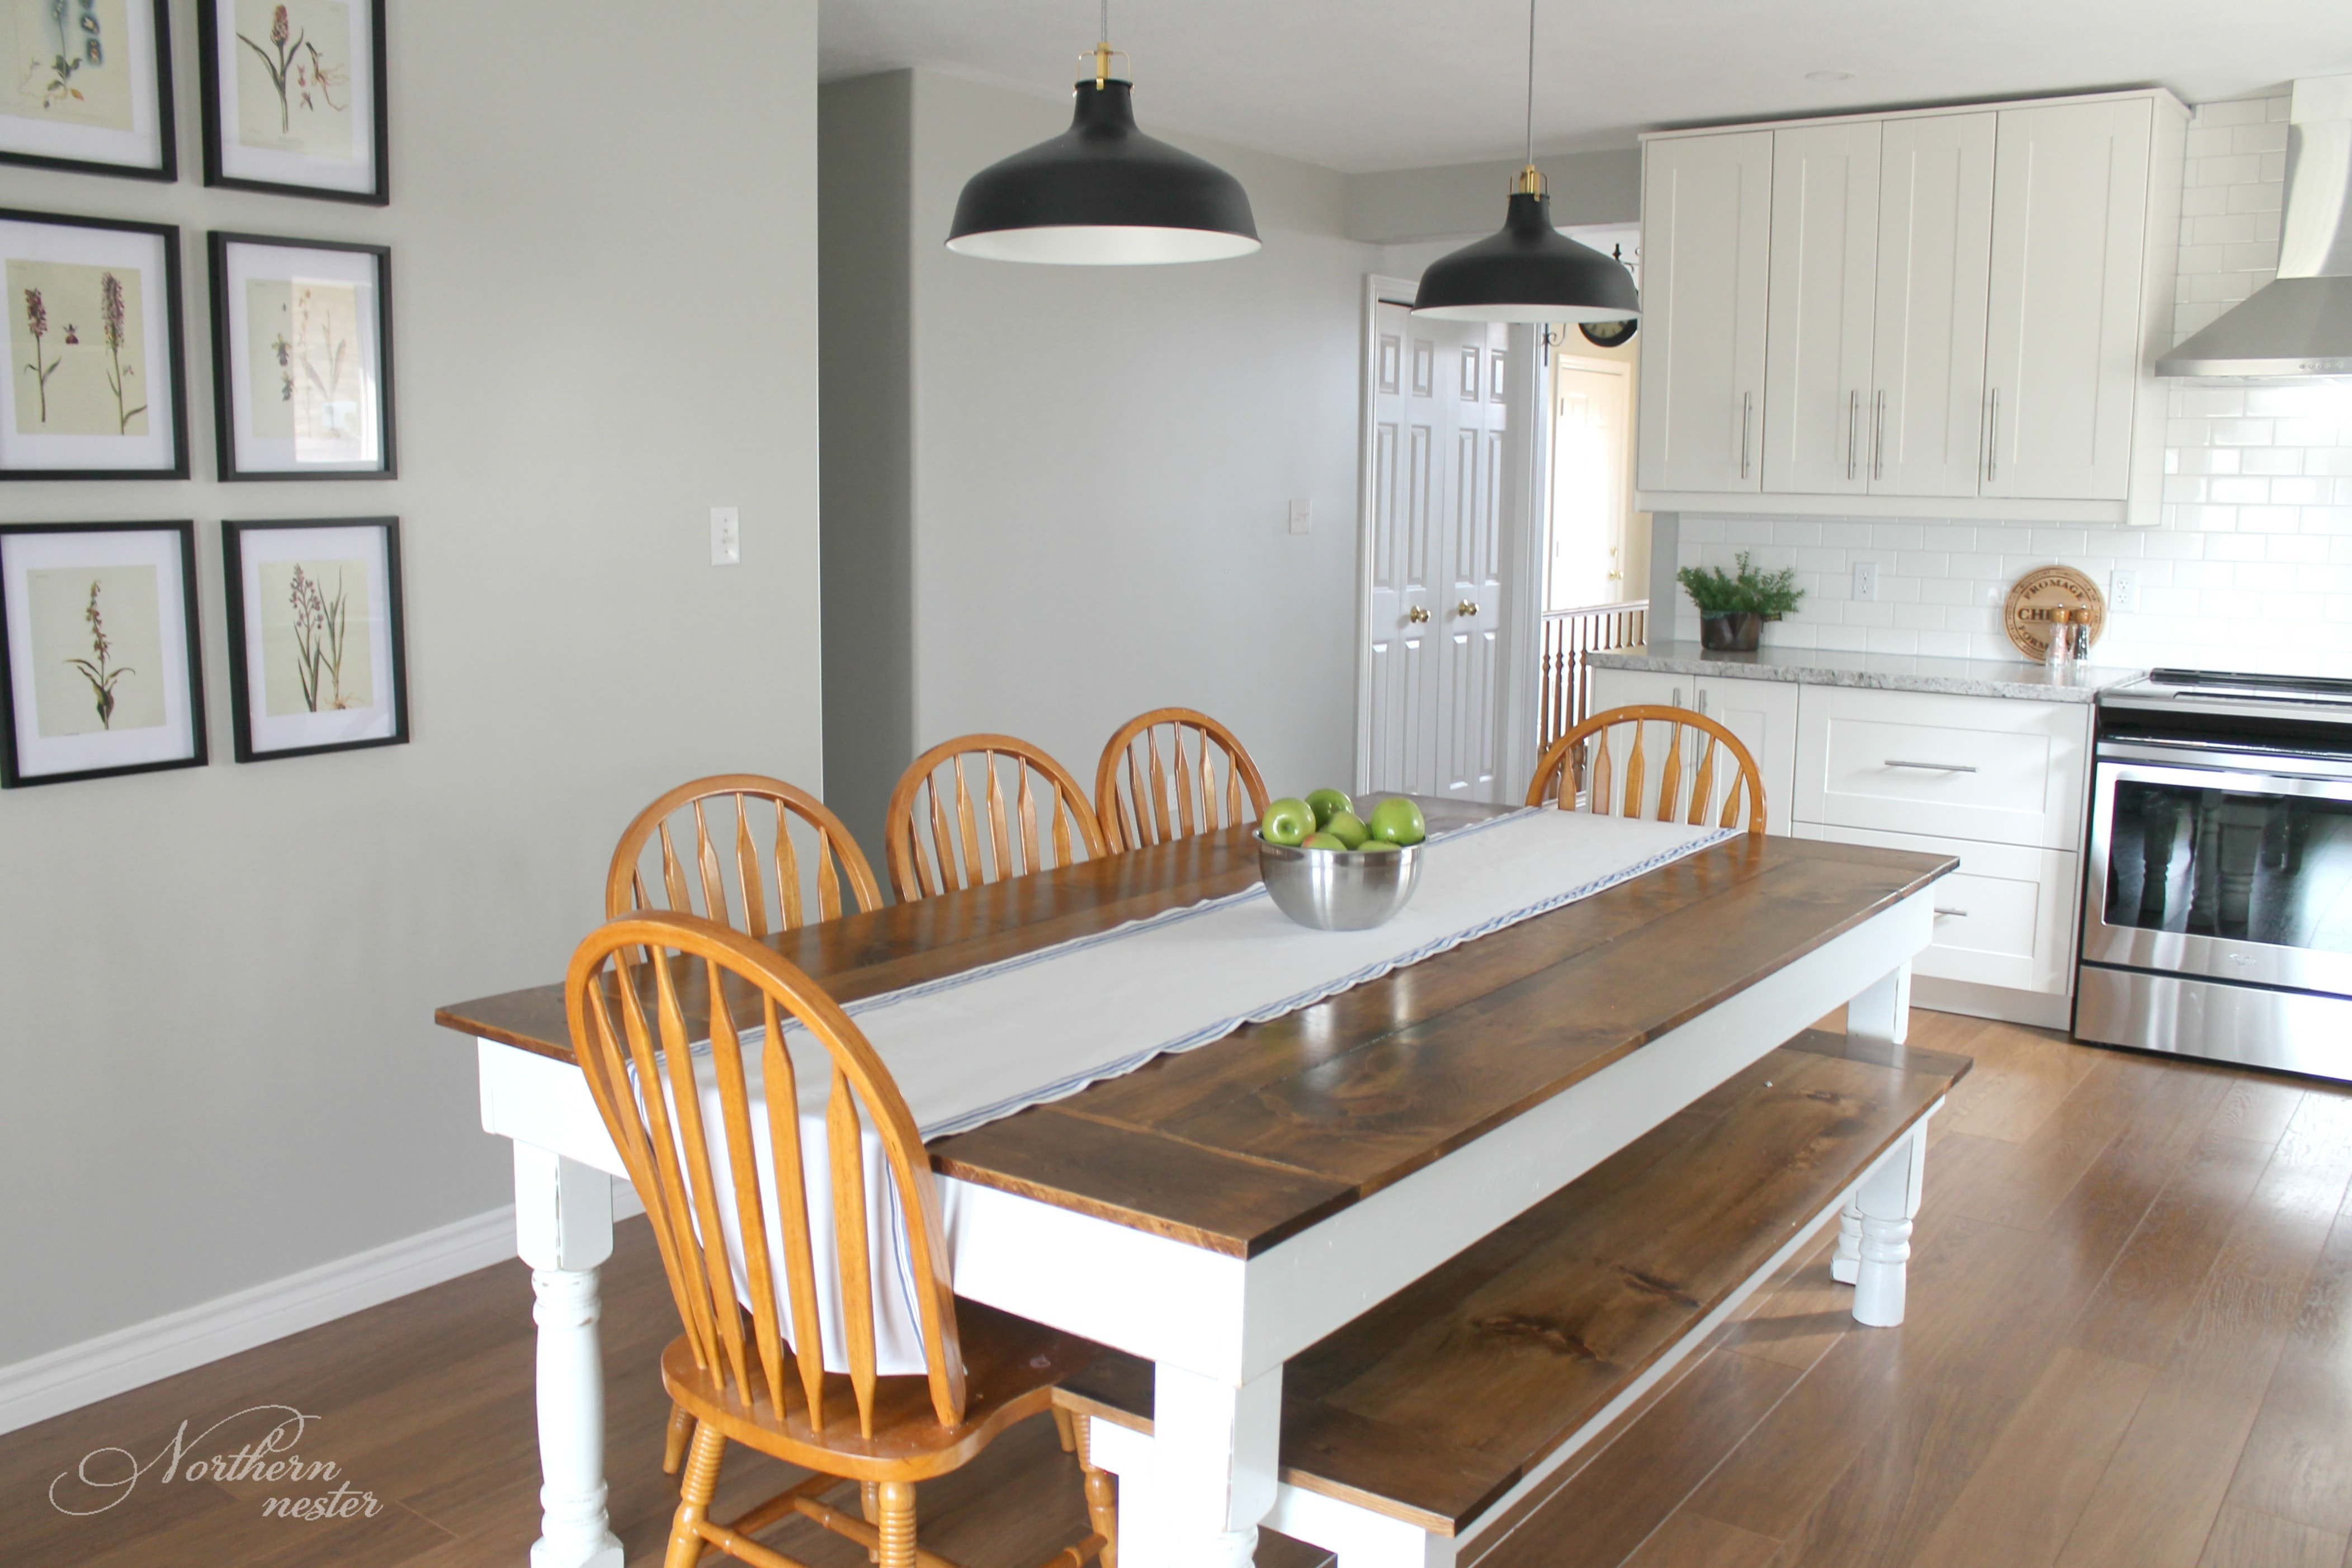 Where To Find Free Or Frugal Farmhouse Decor Northern Nester